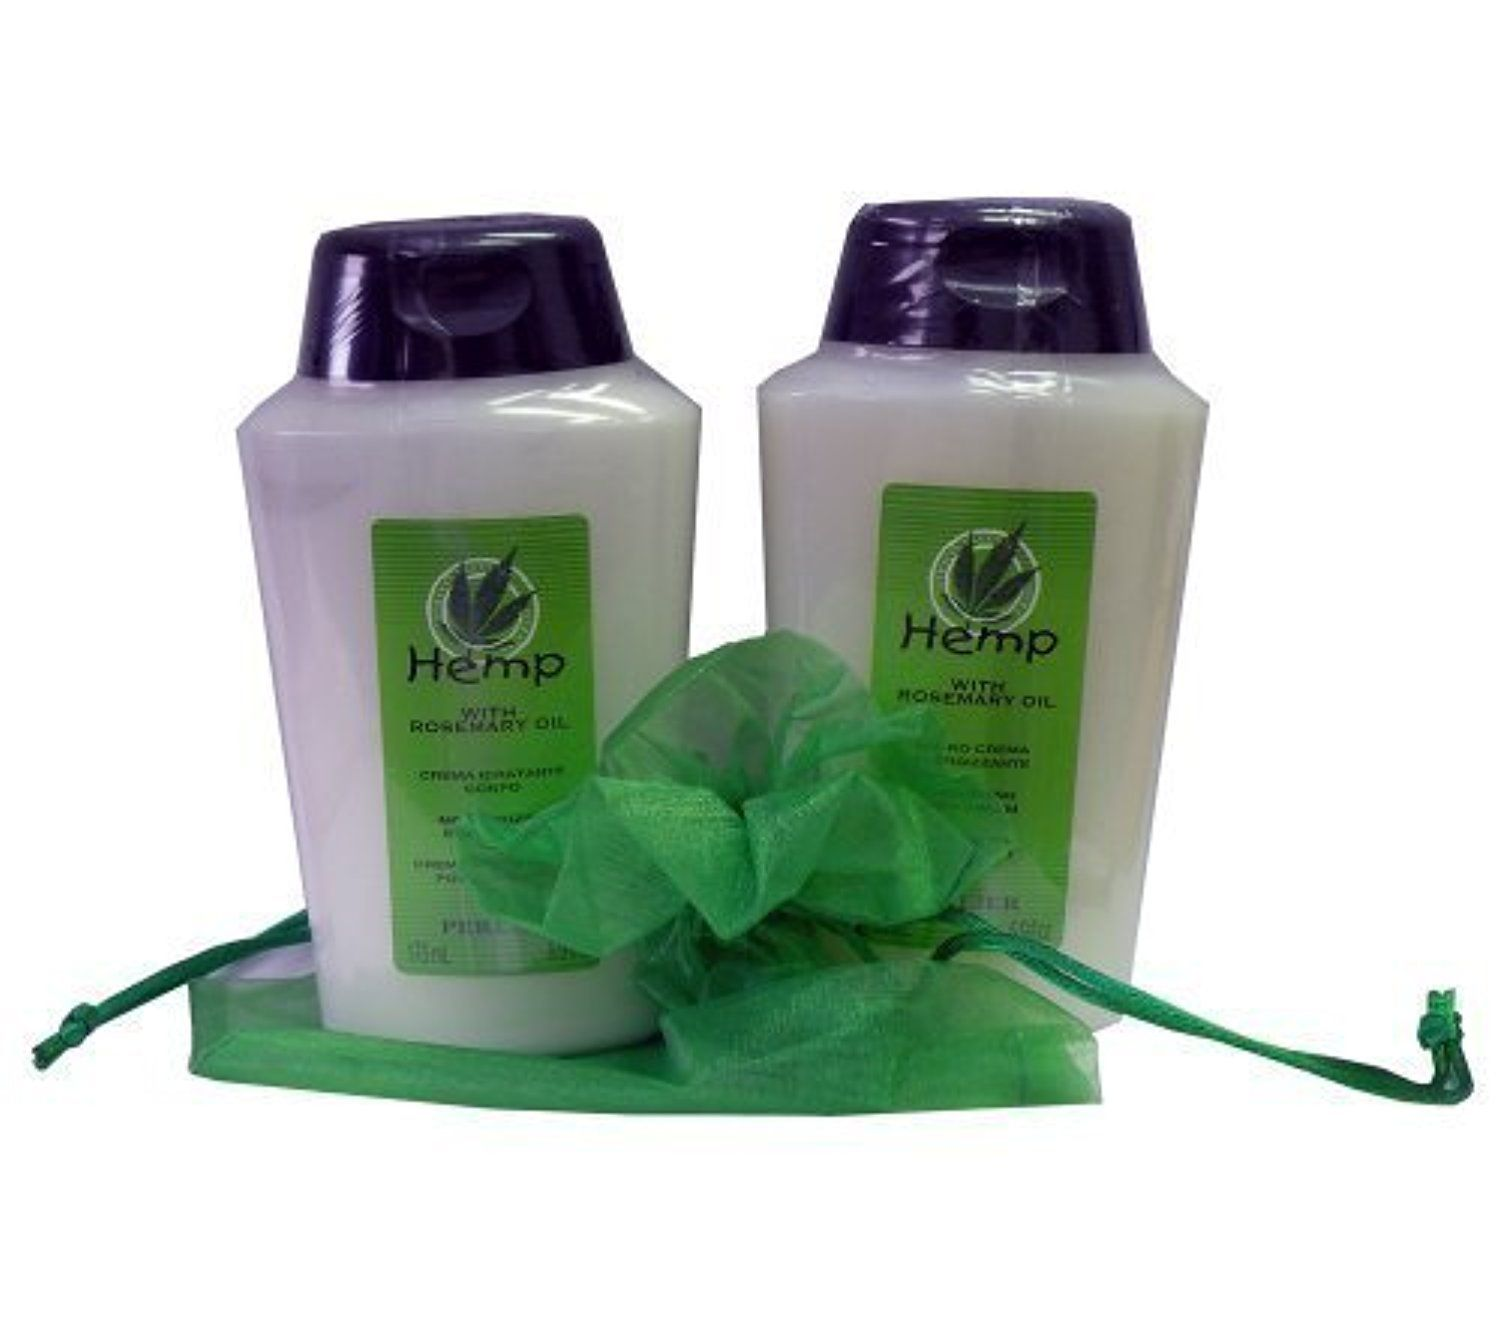 Perlier Hemp with Rosemary Oil Body Cream Bath Cream Set by Perlier -- Awesome products selected by Anna Churchill